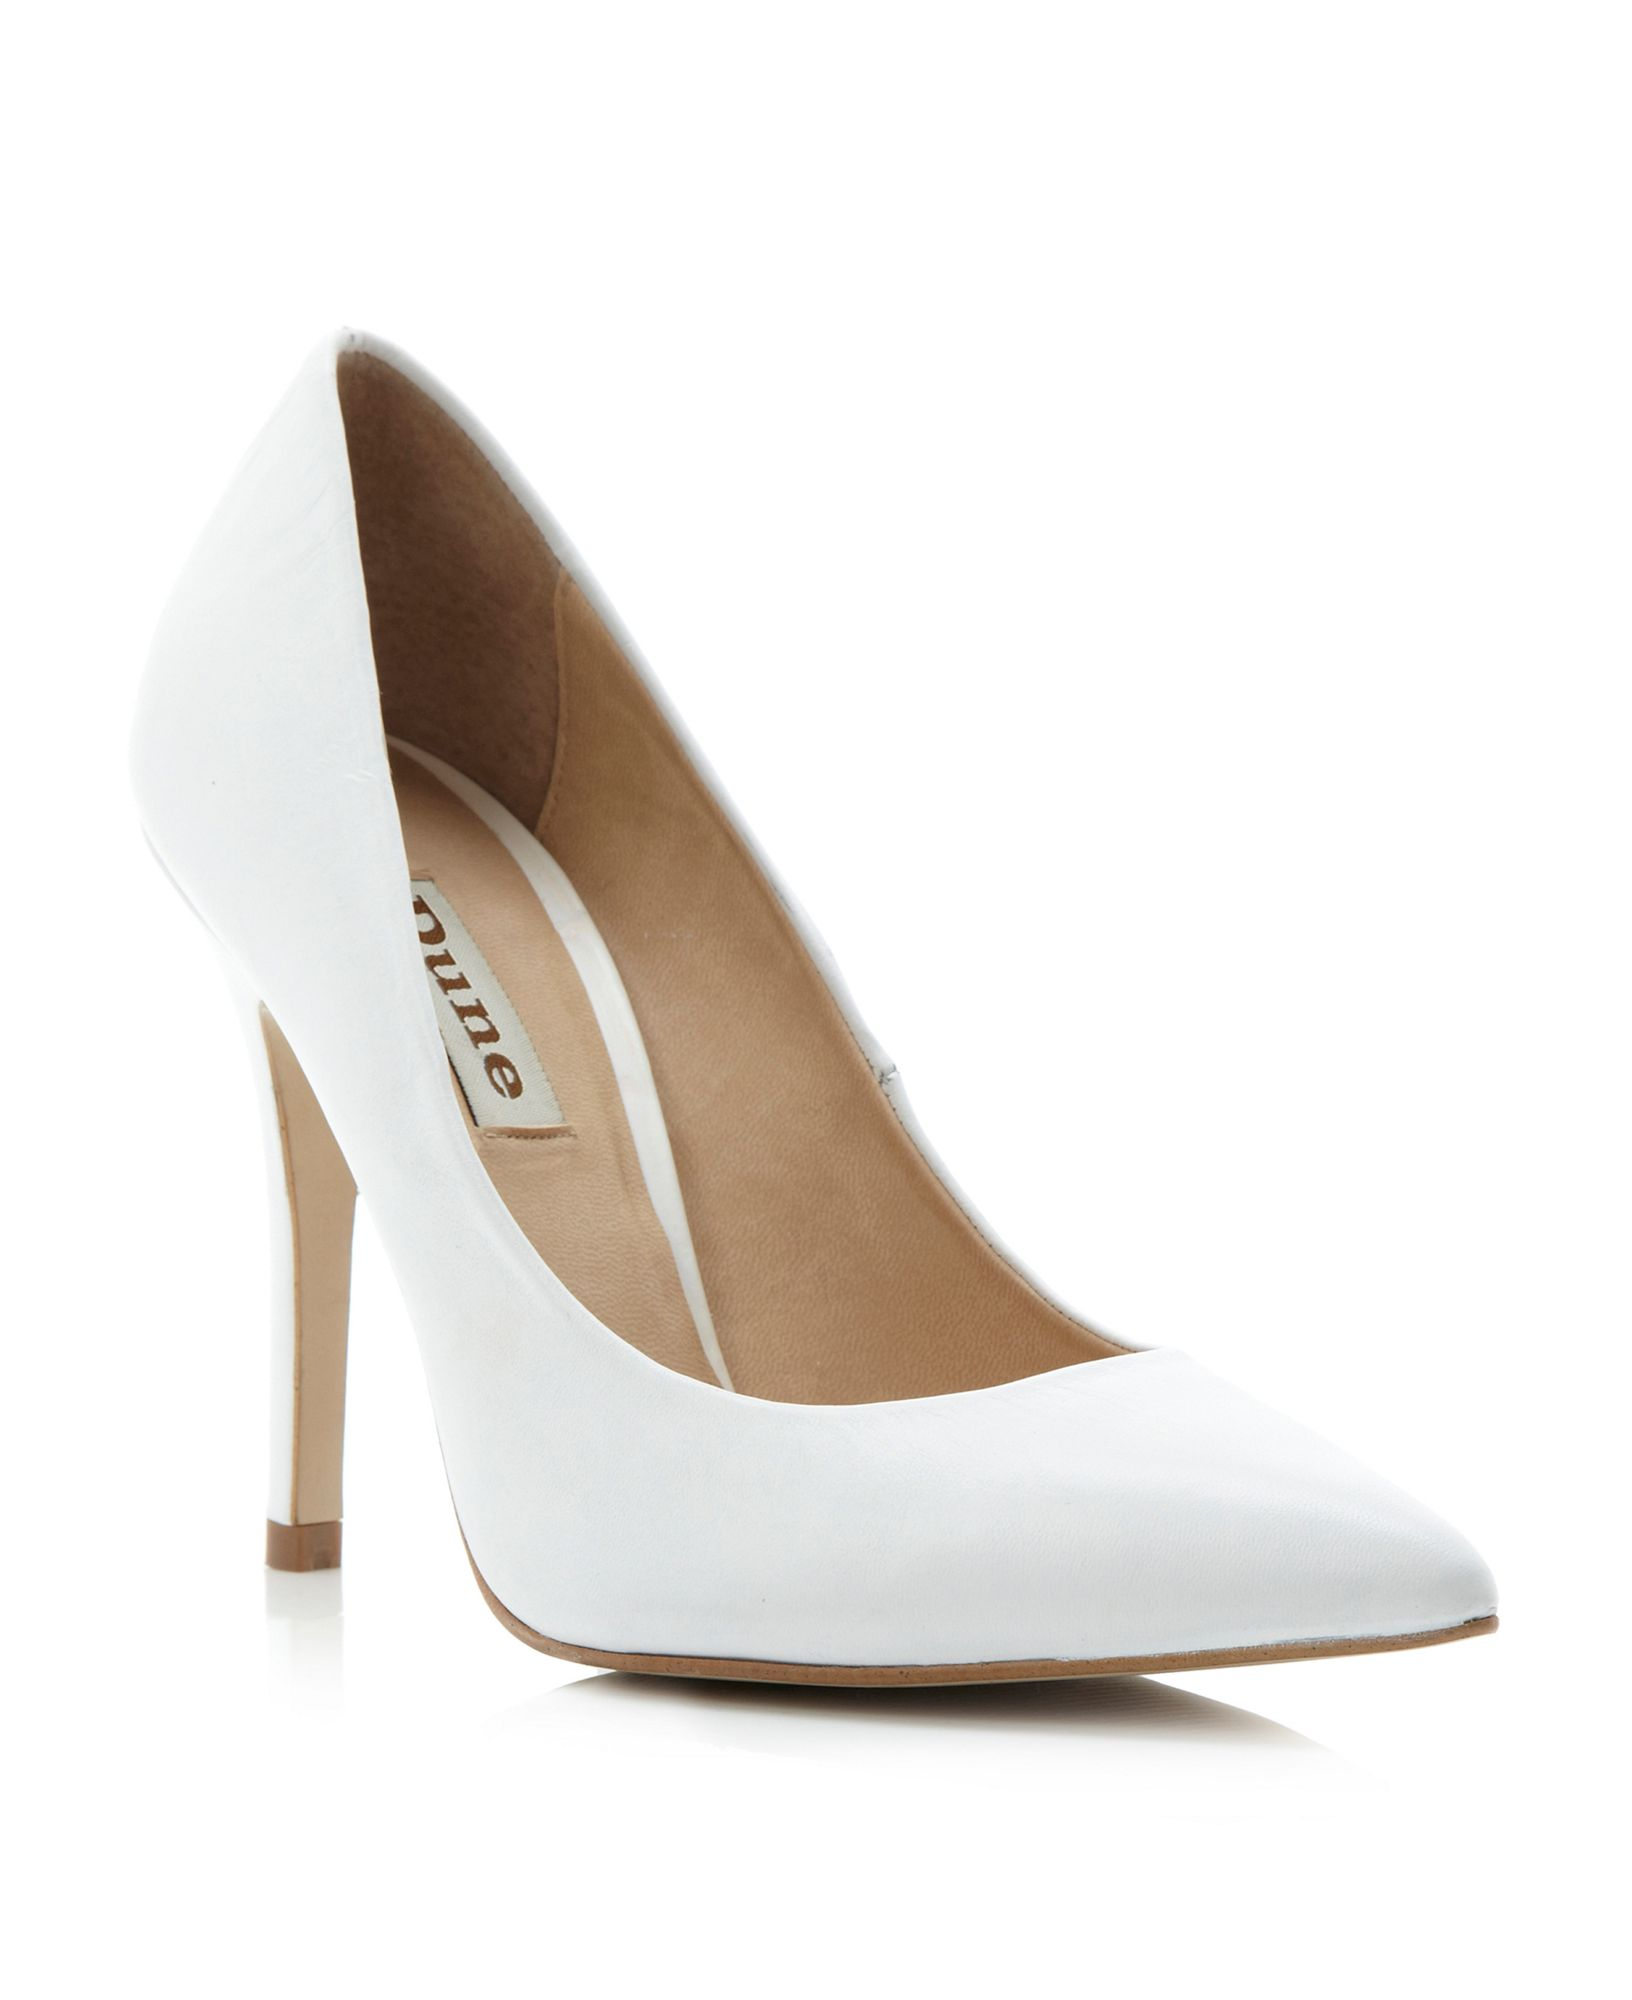 Shoeniverse Wedding Party Shoes featuring DUNE Alvino Pointed